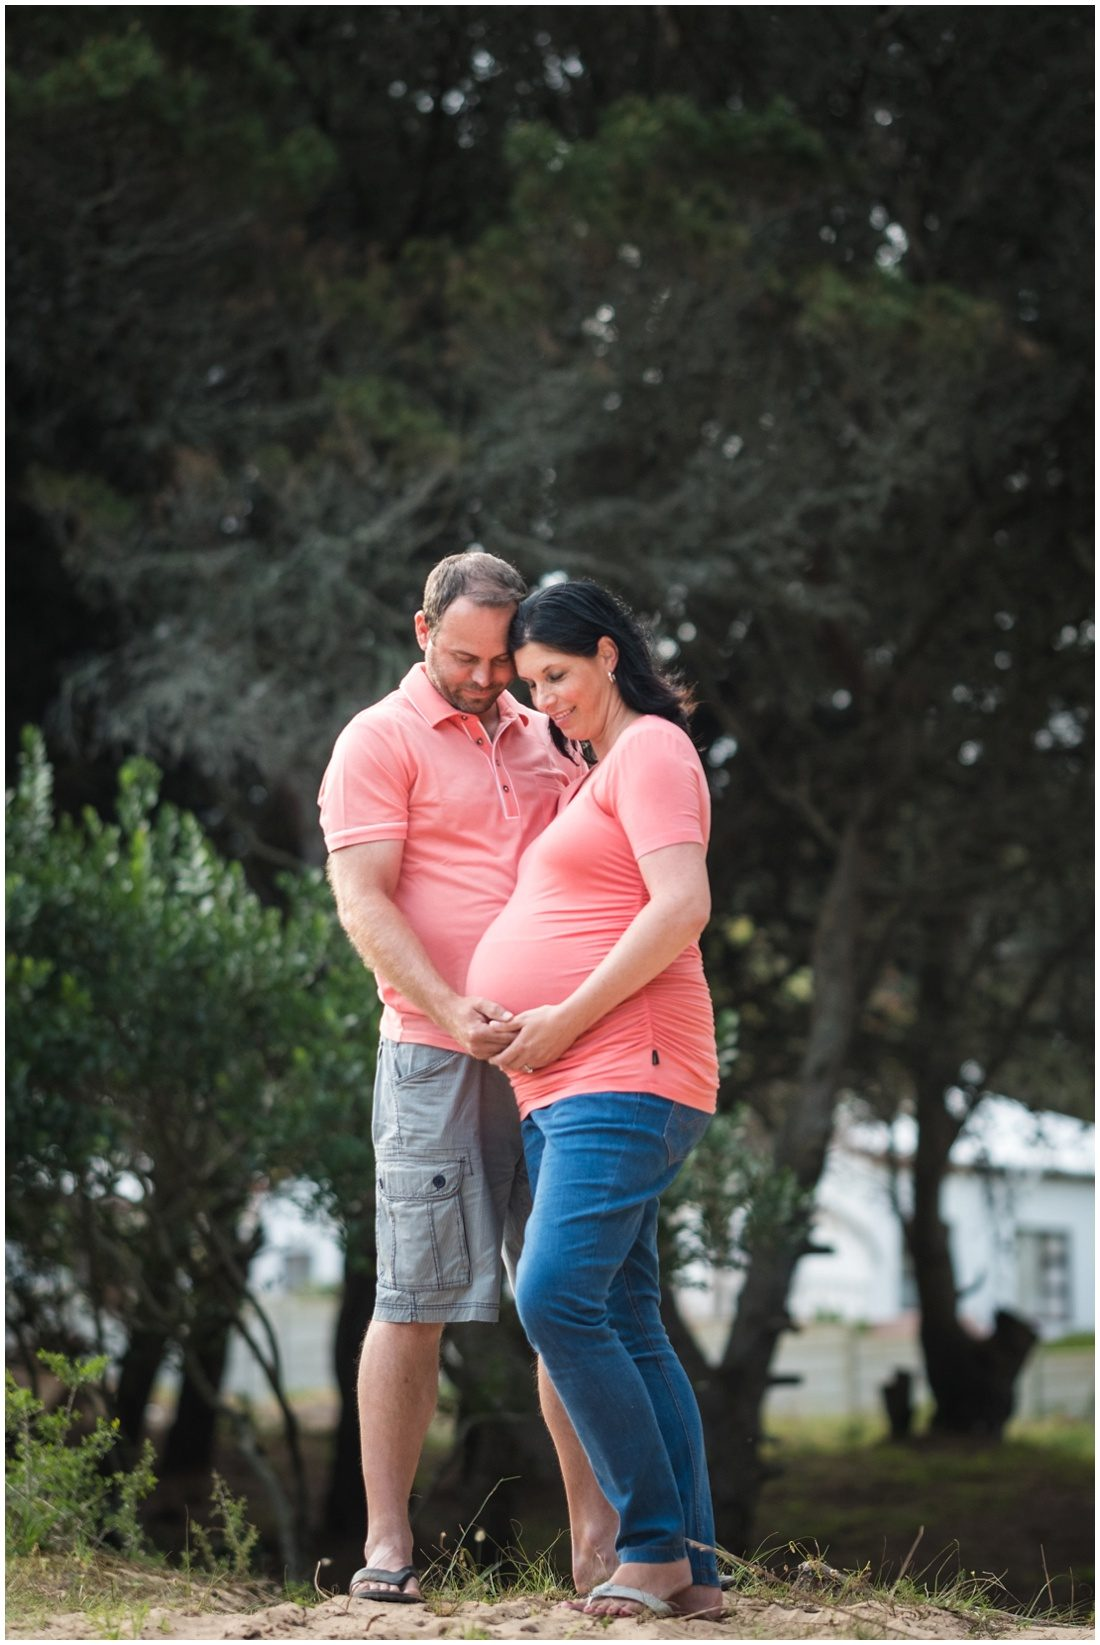 mosselbay-forest-studio-maternity-shoot-roelof-and-louise-exspecting-20